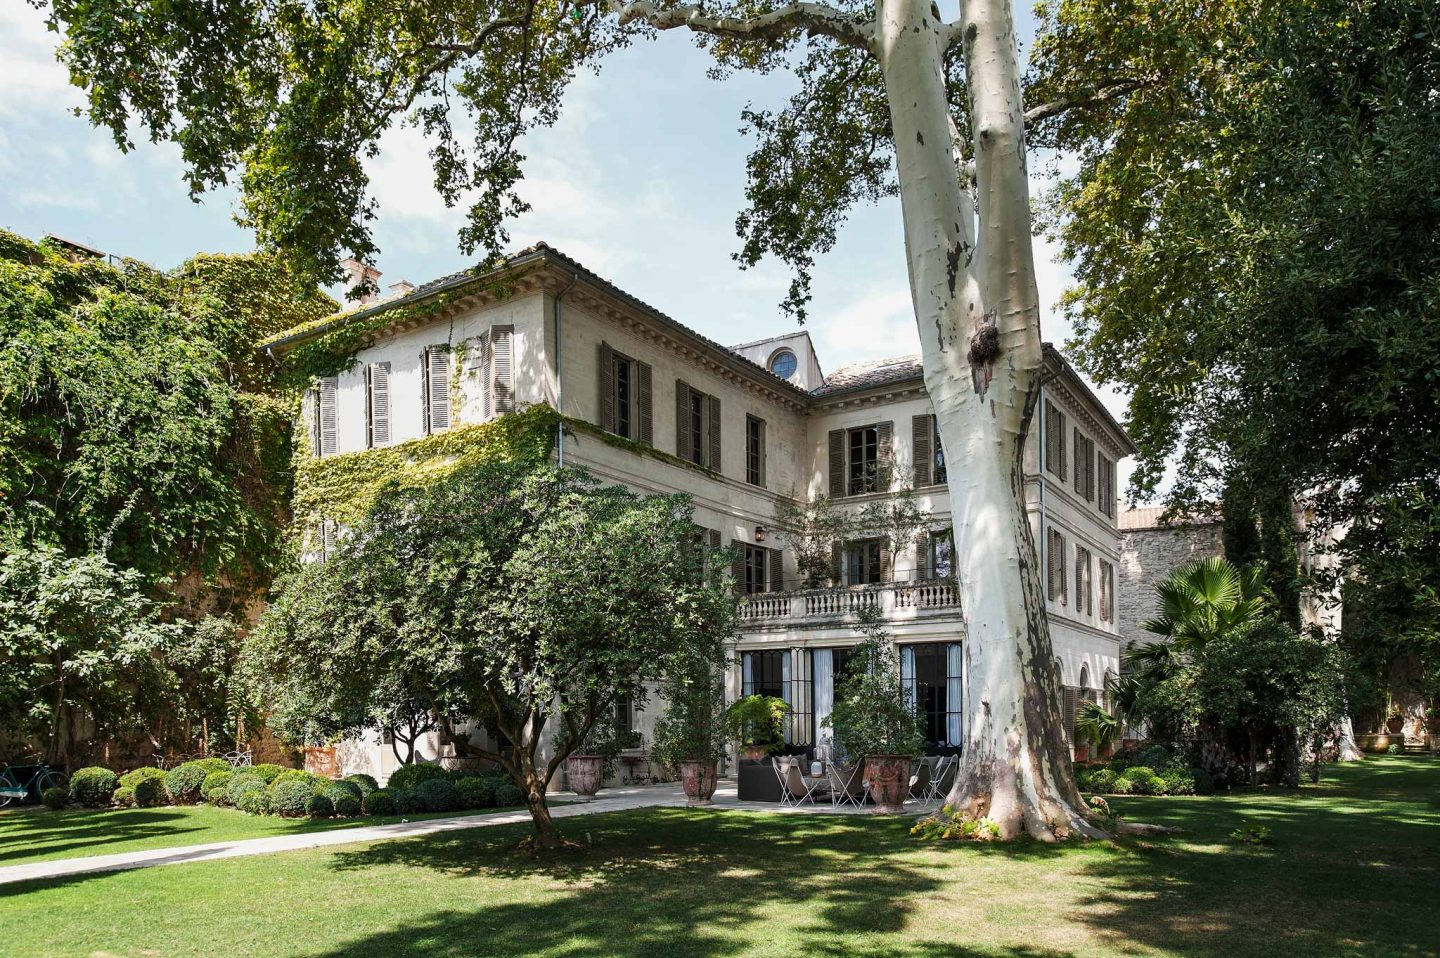 French country mansion facade. Beautiful French country garden inspiration from a luxurious property in the South of France. Breathtaking 19th century restored French chateau with largest private garden in Avignon. Avignon Hôtel Particulier. Photo: Haven In.